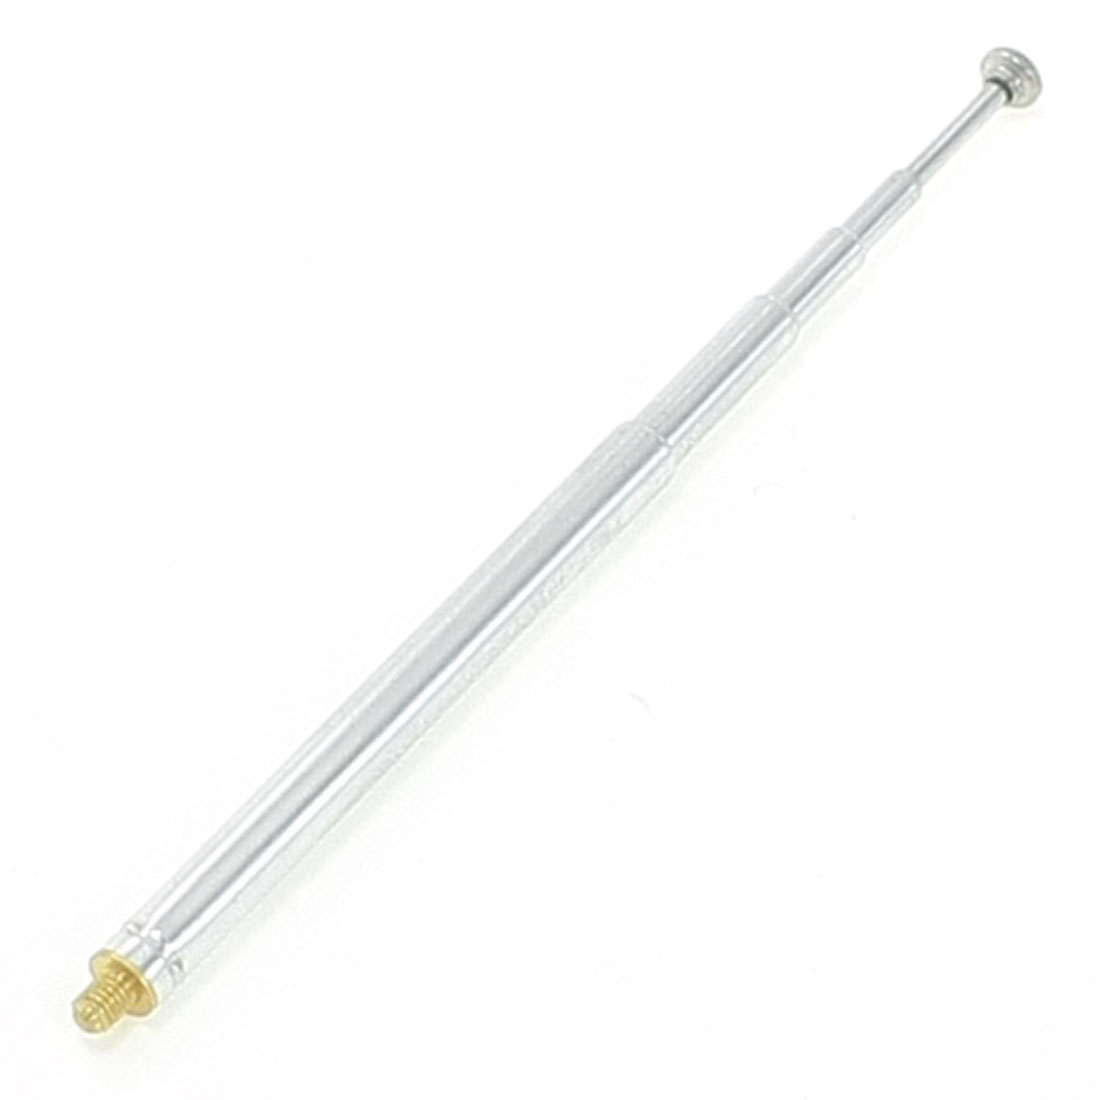 Silver Tone FM Radio TV 5 Sections Telescopic Antenna Aerial 22cm